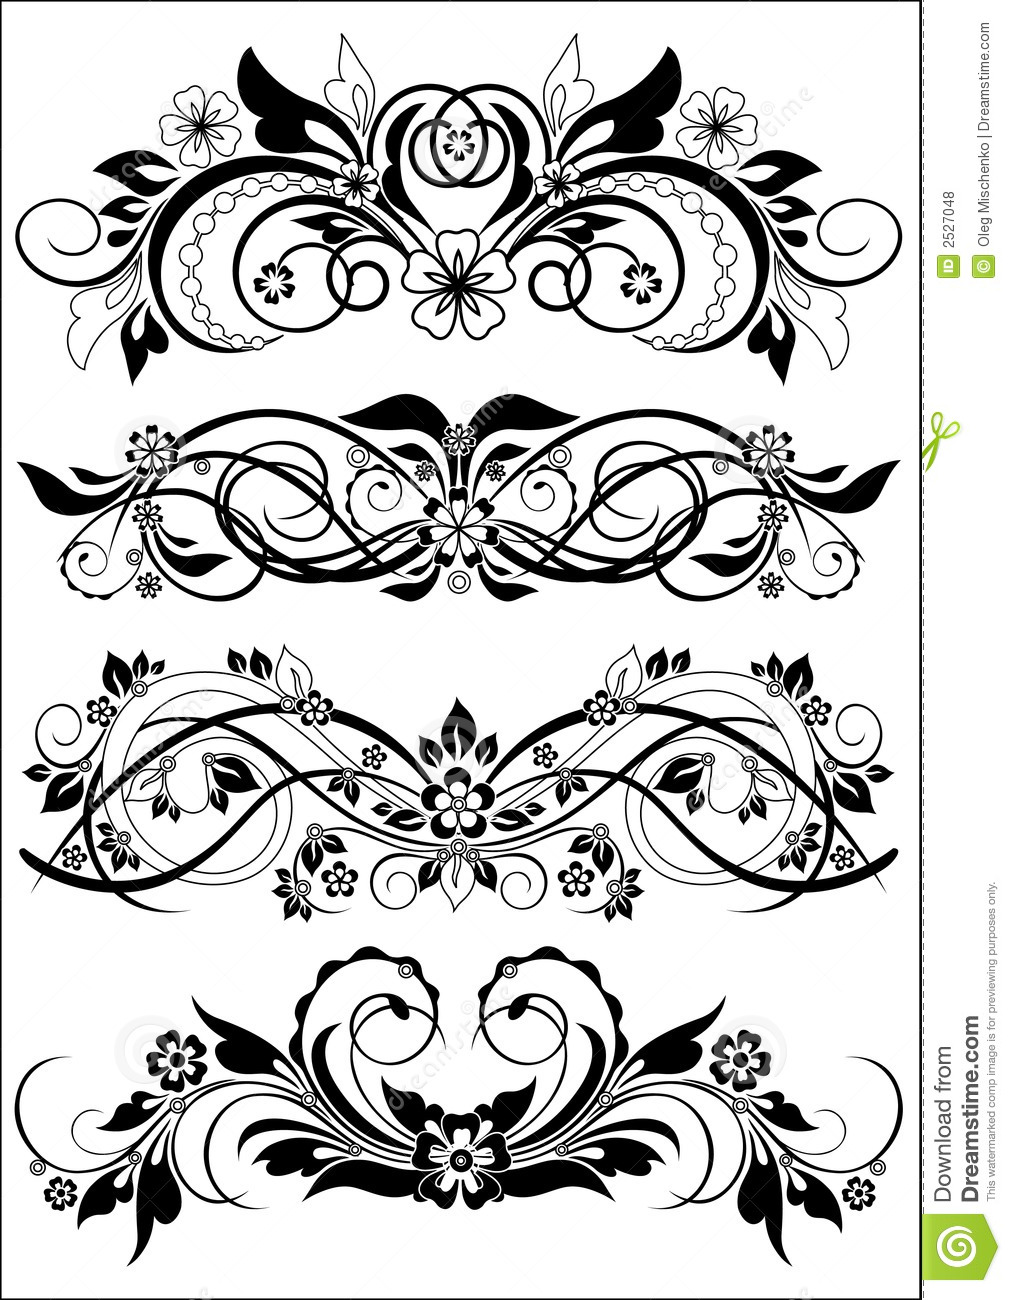 Flowers Decorative Letter R Balck And White Royalty Free: Decorative Patterns Stock Vector. Illustration Of Curl